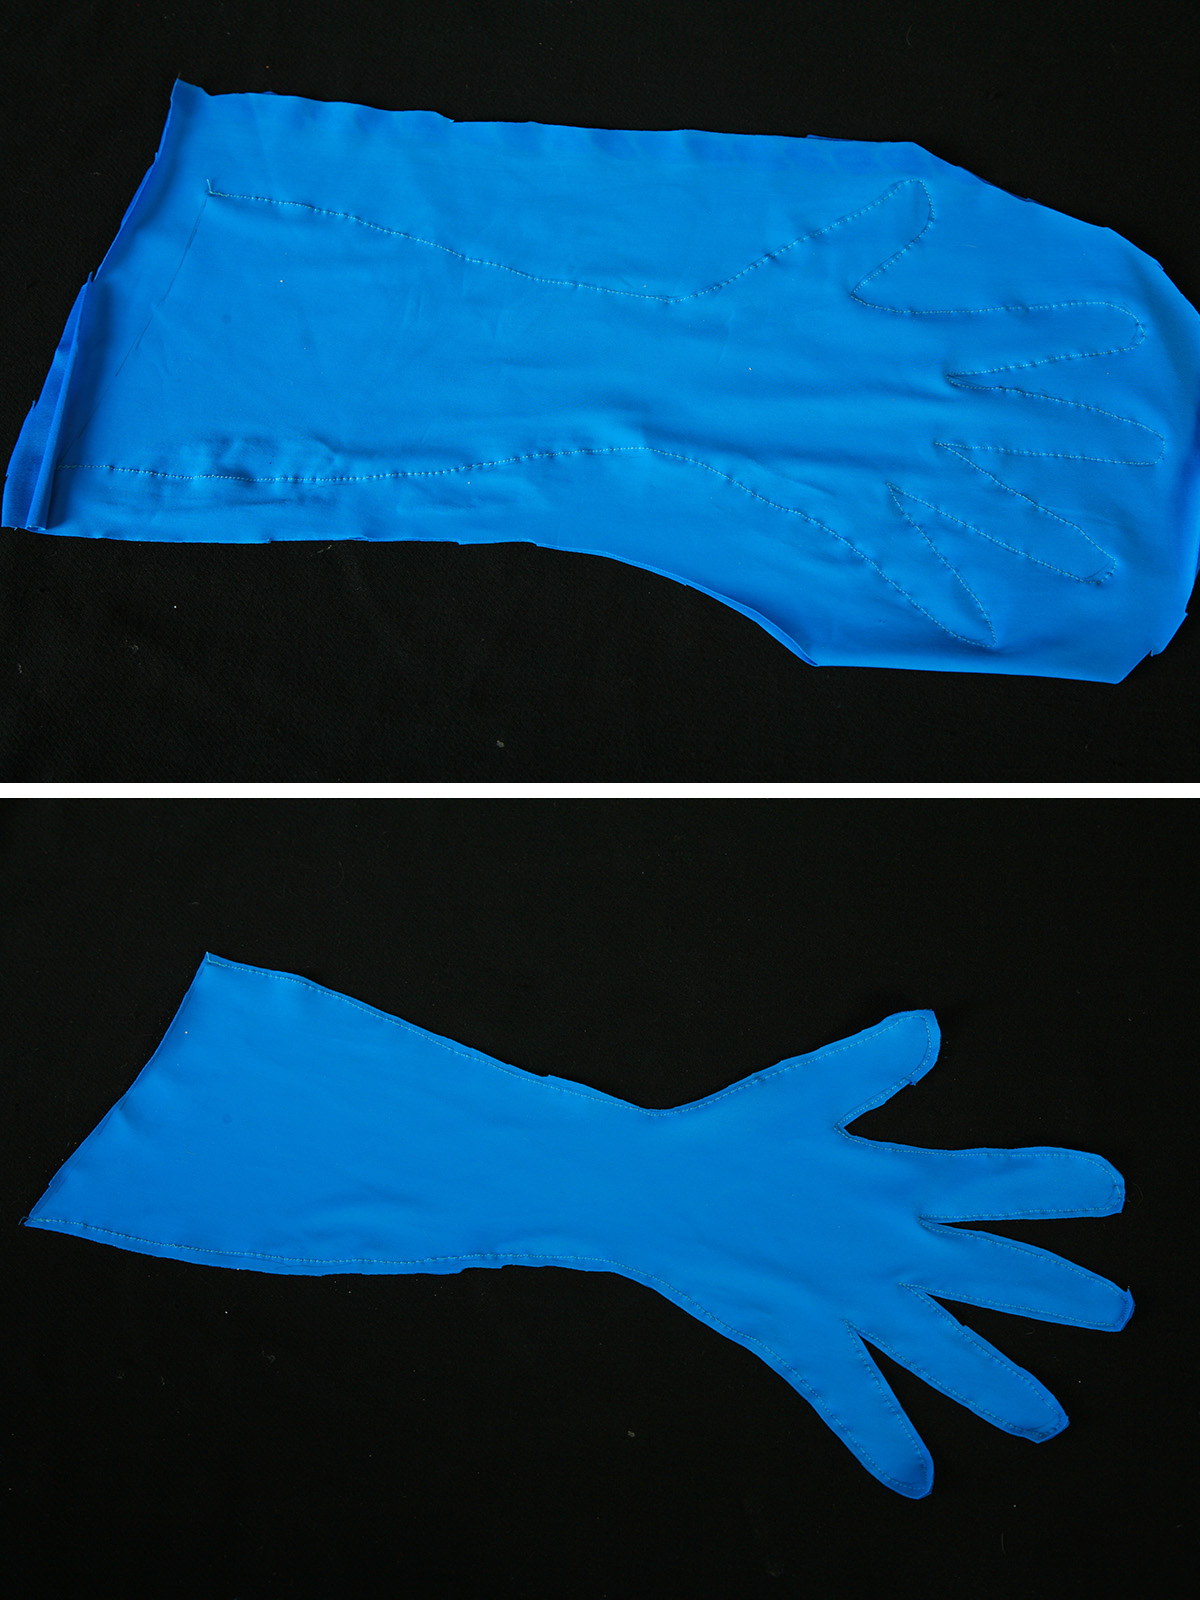 A two part compilation image showing a blue spandex glove, before and after being trimmed.